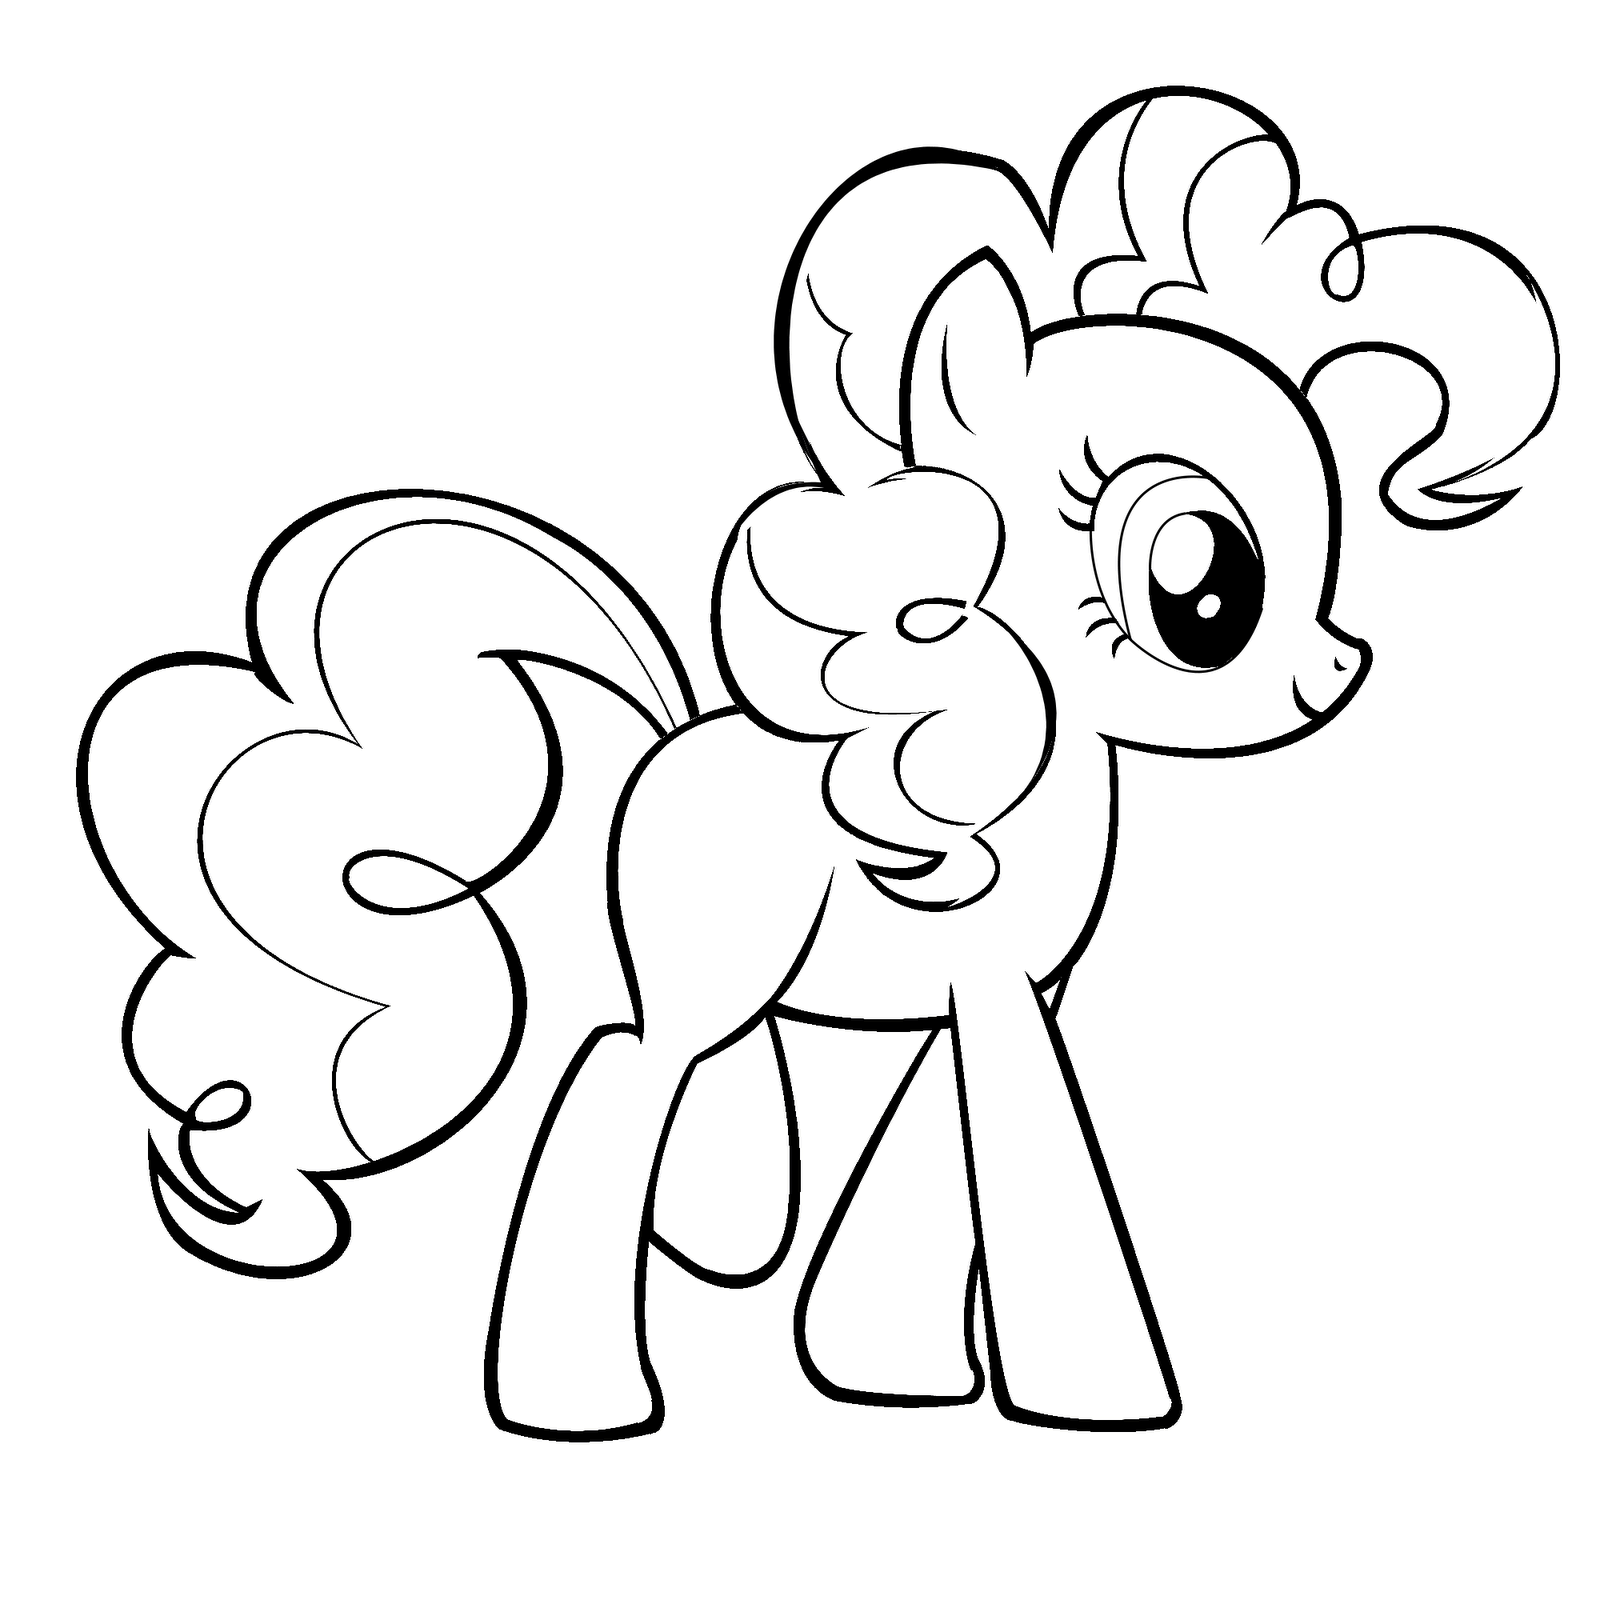 my little pony coloring images my little pony friendship is magic coloring pages pony images coloring my little